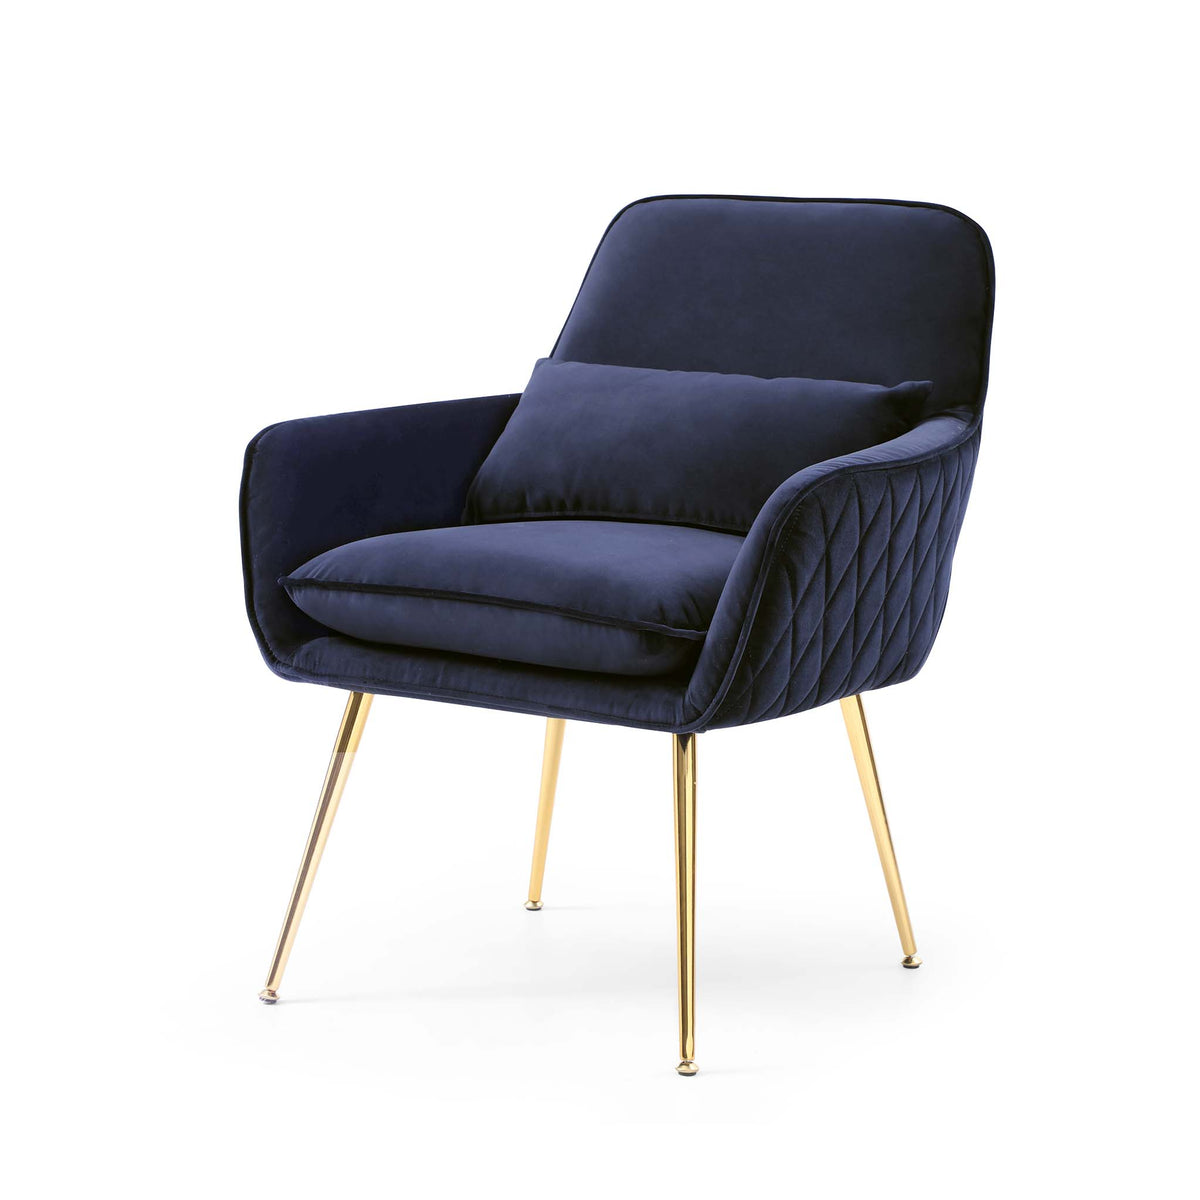 Diamond Ink Blue Velvet Accent Chair with gold legs